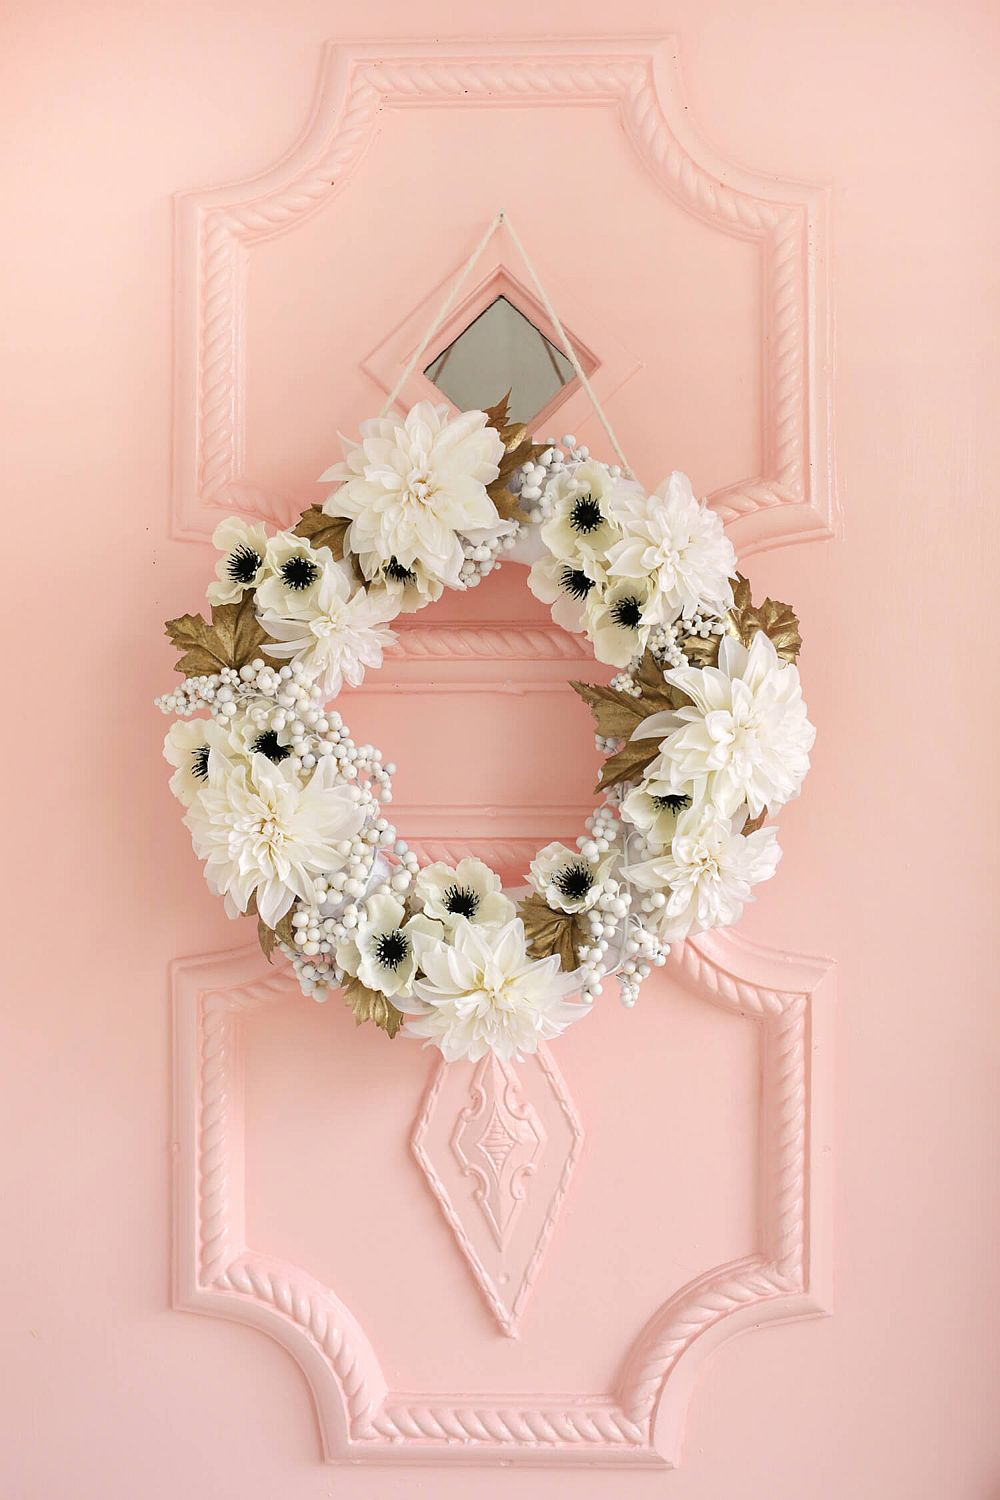 Chic white and gold Holiday wreath DIY Idea